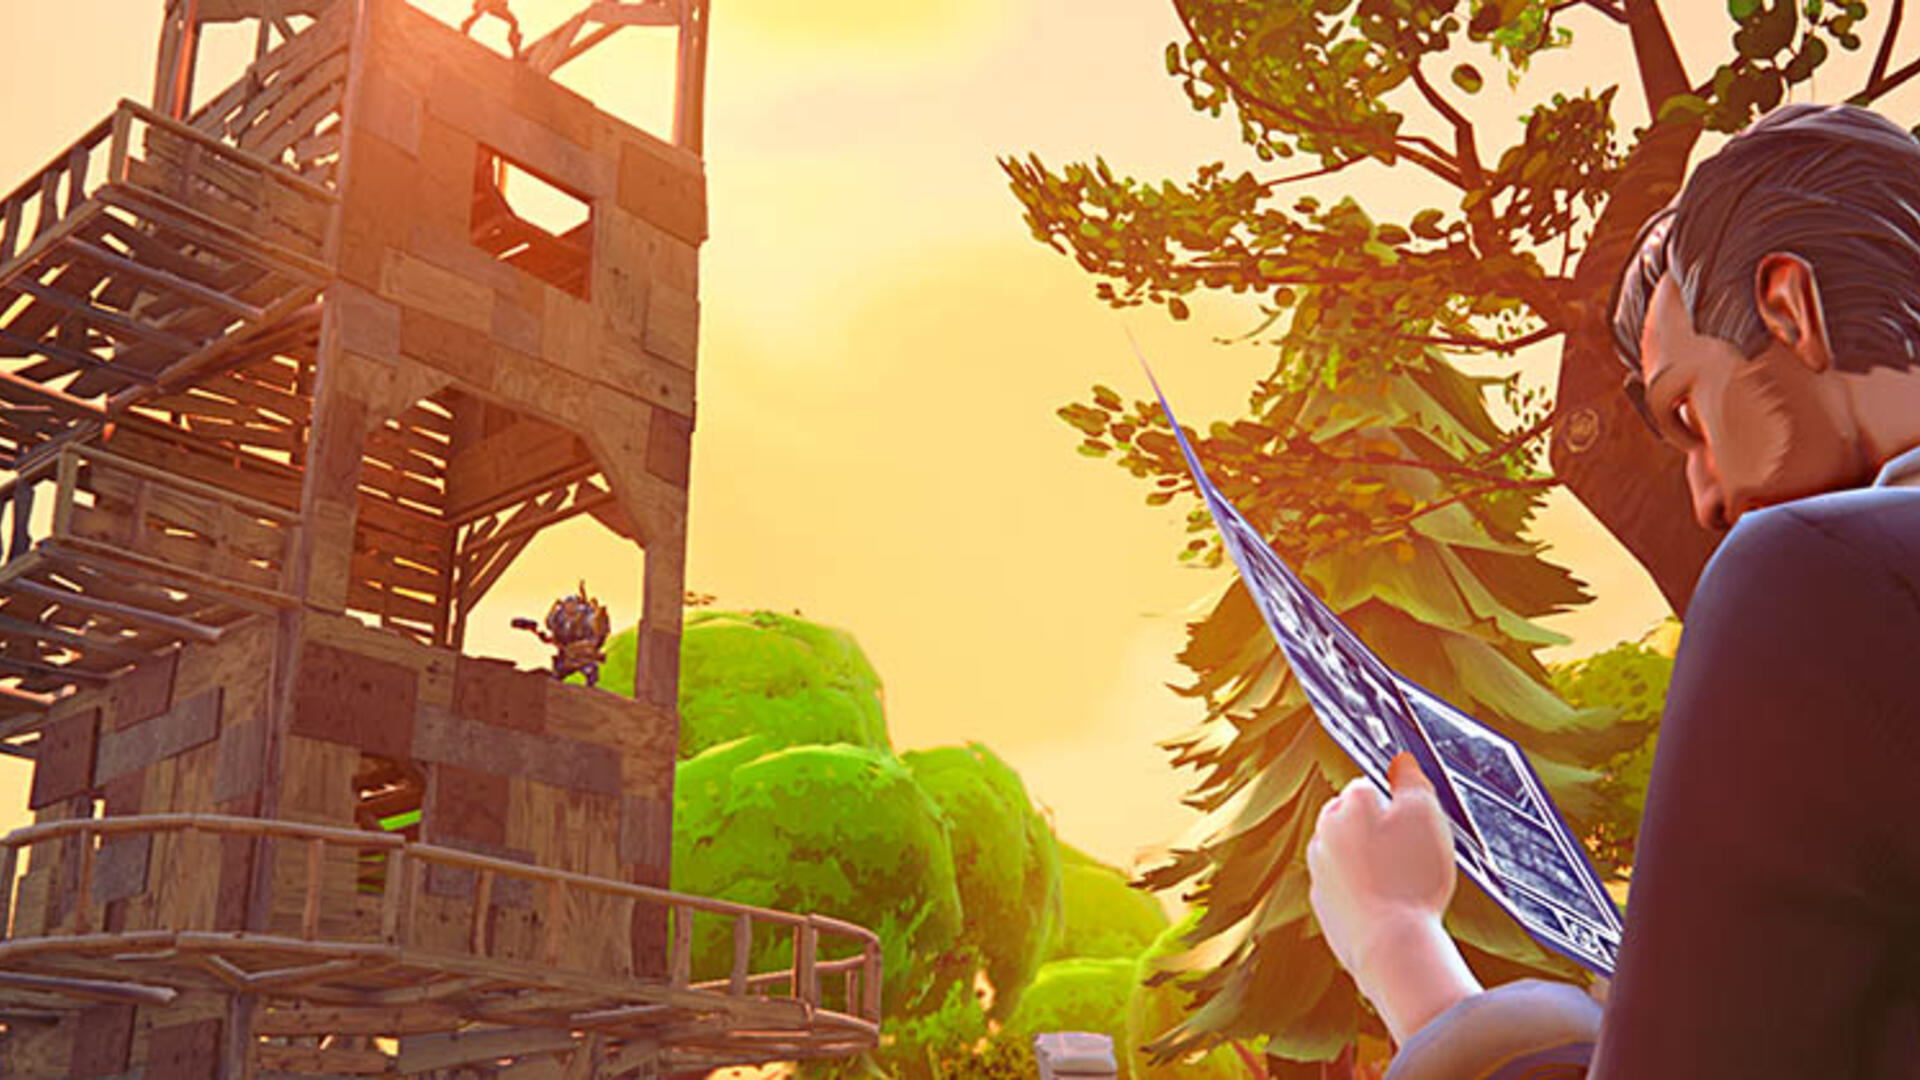 Fortnite v4.5 Introduces Dual Pistols, New Playground Mode